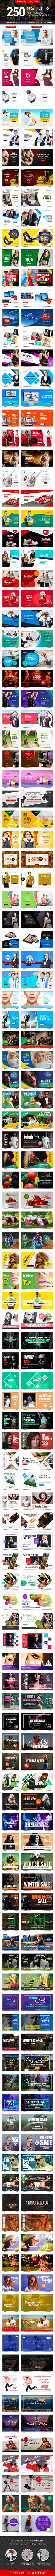 Facebook Ad Banners - 250 - Template PSD